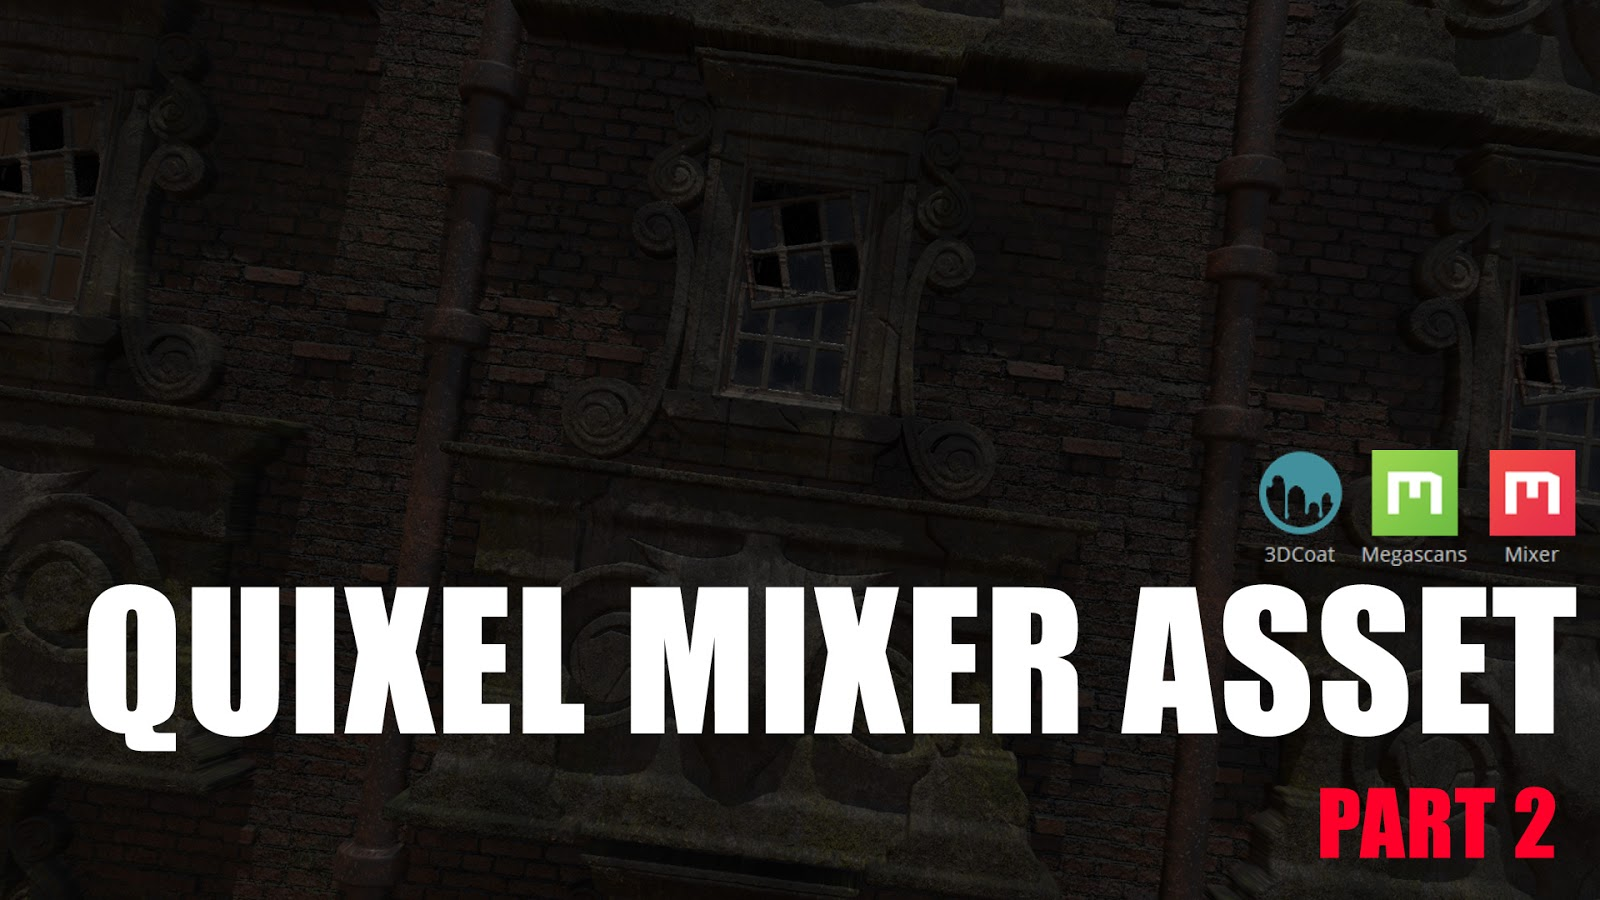 QUIXEL_MIXER_ASSET_part_2_youtube.jpg